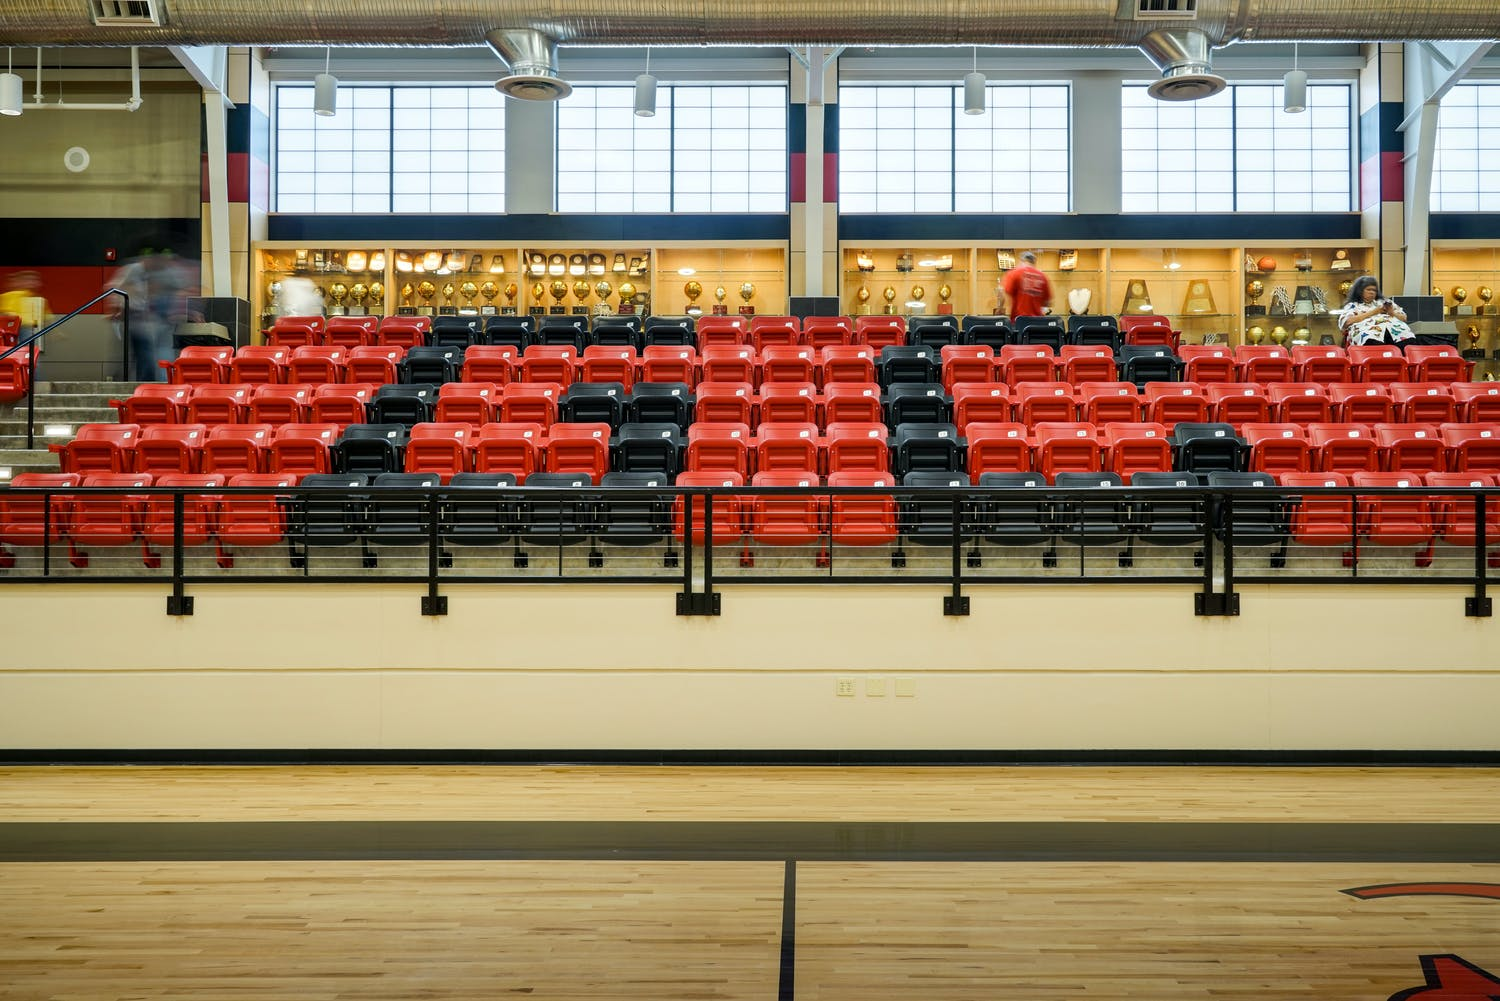 Glasscock County I S D Competition Gym Gallery Images